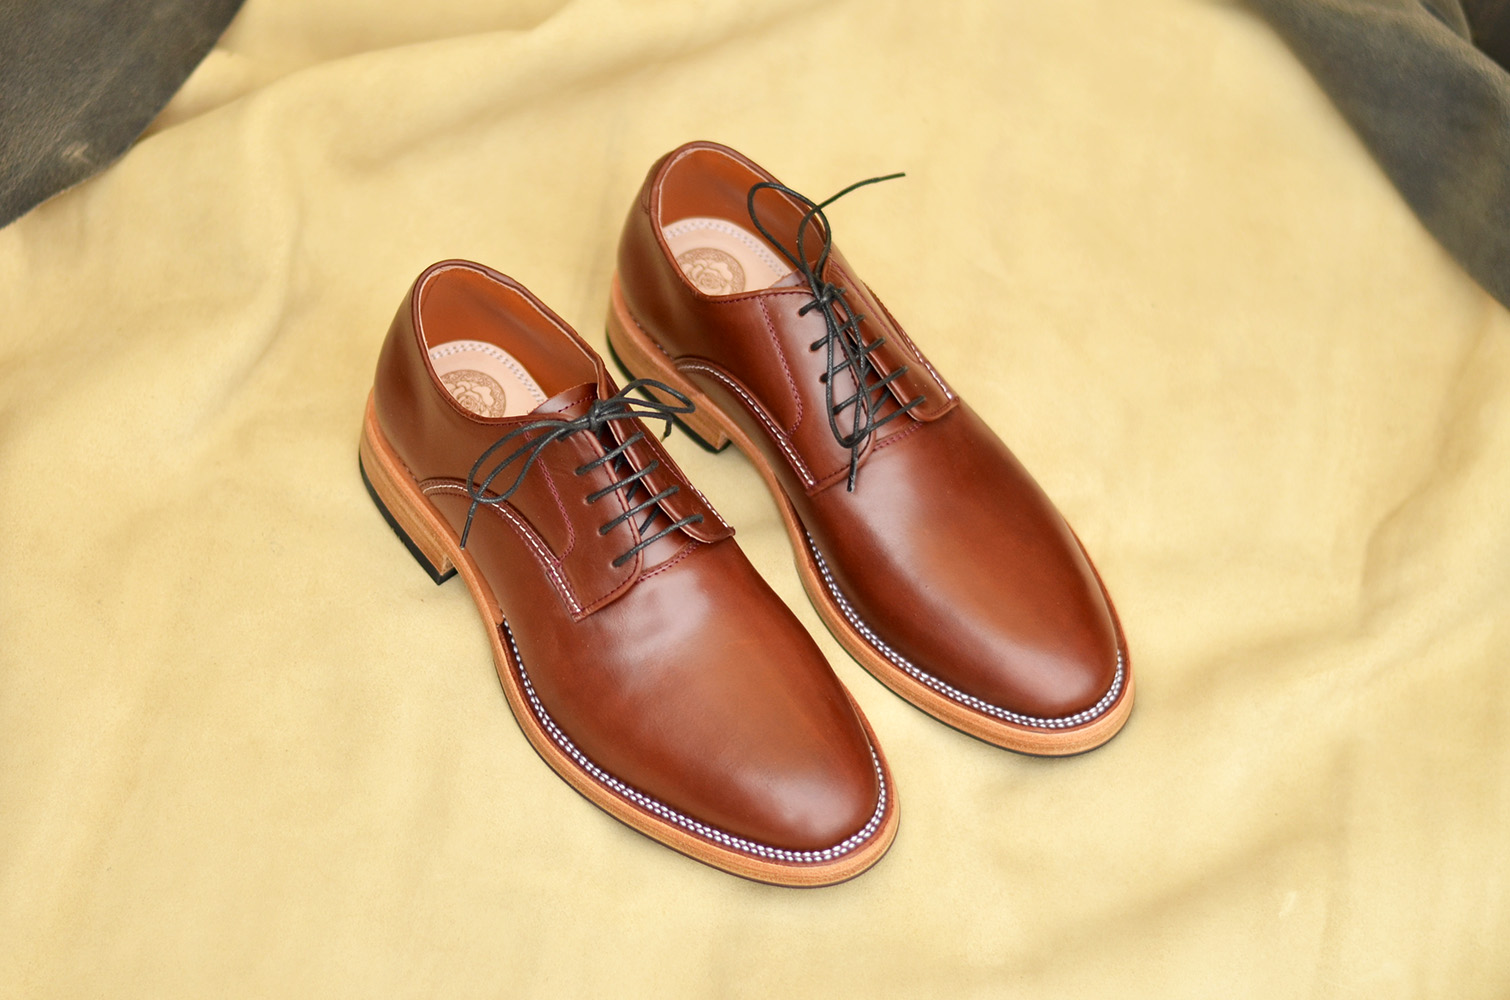 civil-shoes-in-oxblood7